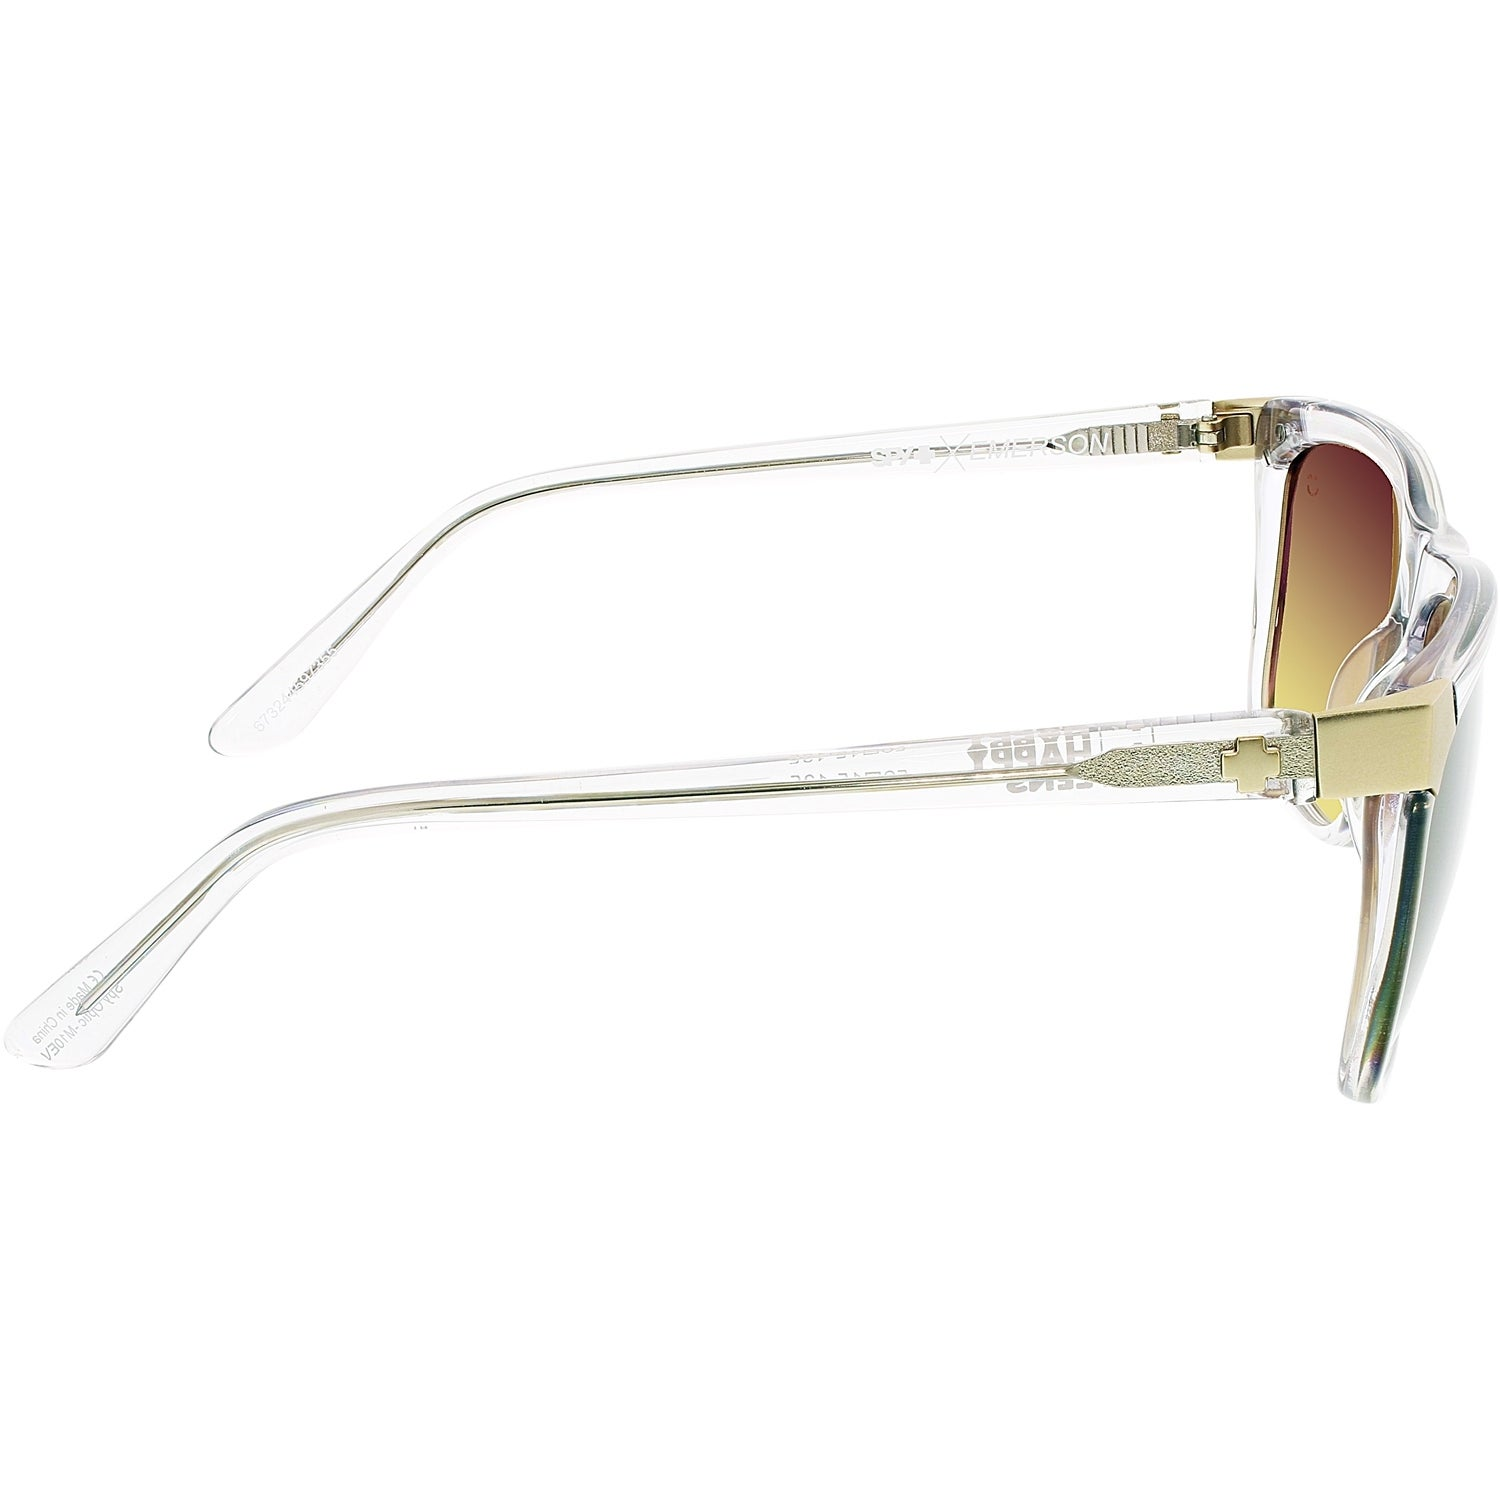 071ac361f5 Shop Spy Men s Gradient Emerson 673244597355 Clear Square Sunglasses - Free  Shipping Today - Overstock - 18901000